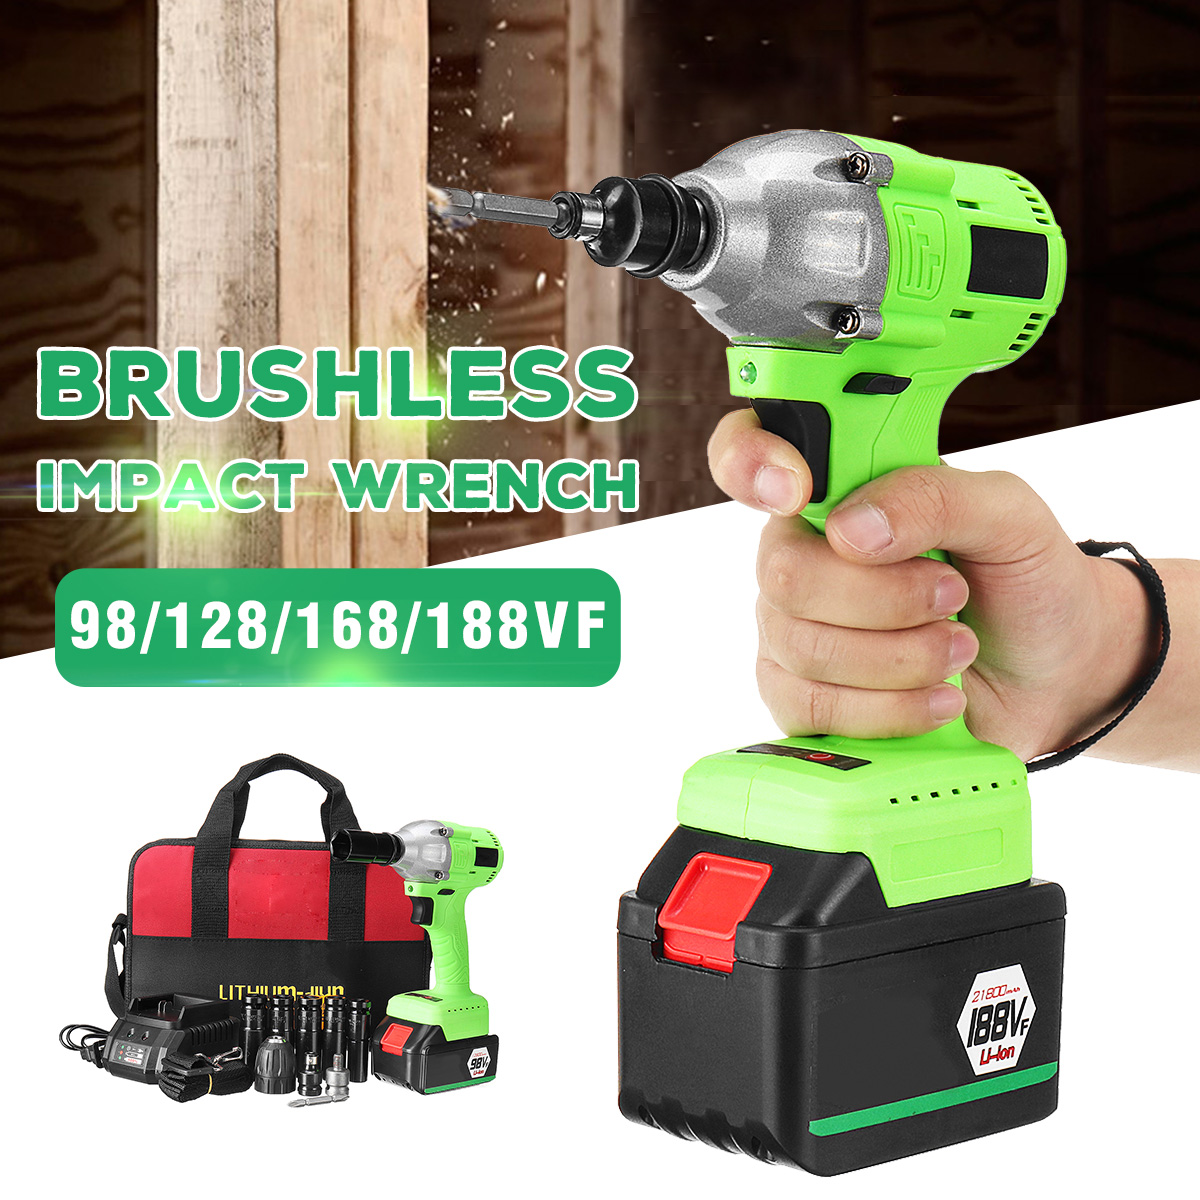 Electric Brushless 98/128/168/188VF Wrench Cordless Rechargeable Li-Ion Battery Electric Impact Wrench Drill Installation Tool electric impact wrench 98 128 168 188vf electric brushless li ion battery wrench 10mm chuk with box cordless speed control power